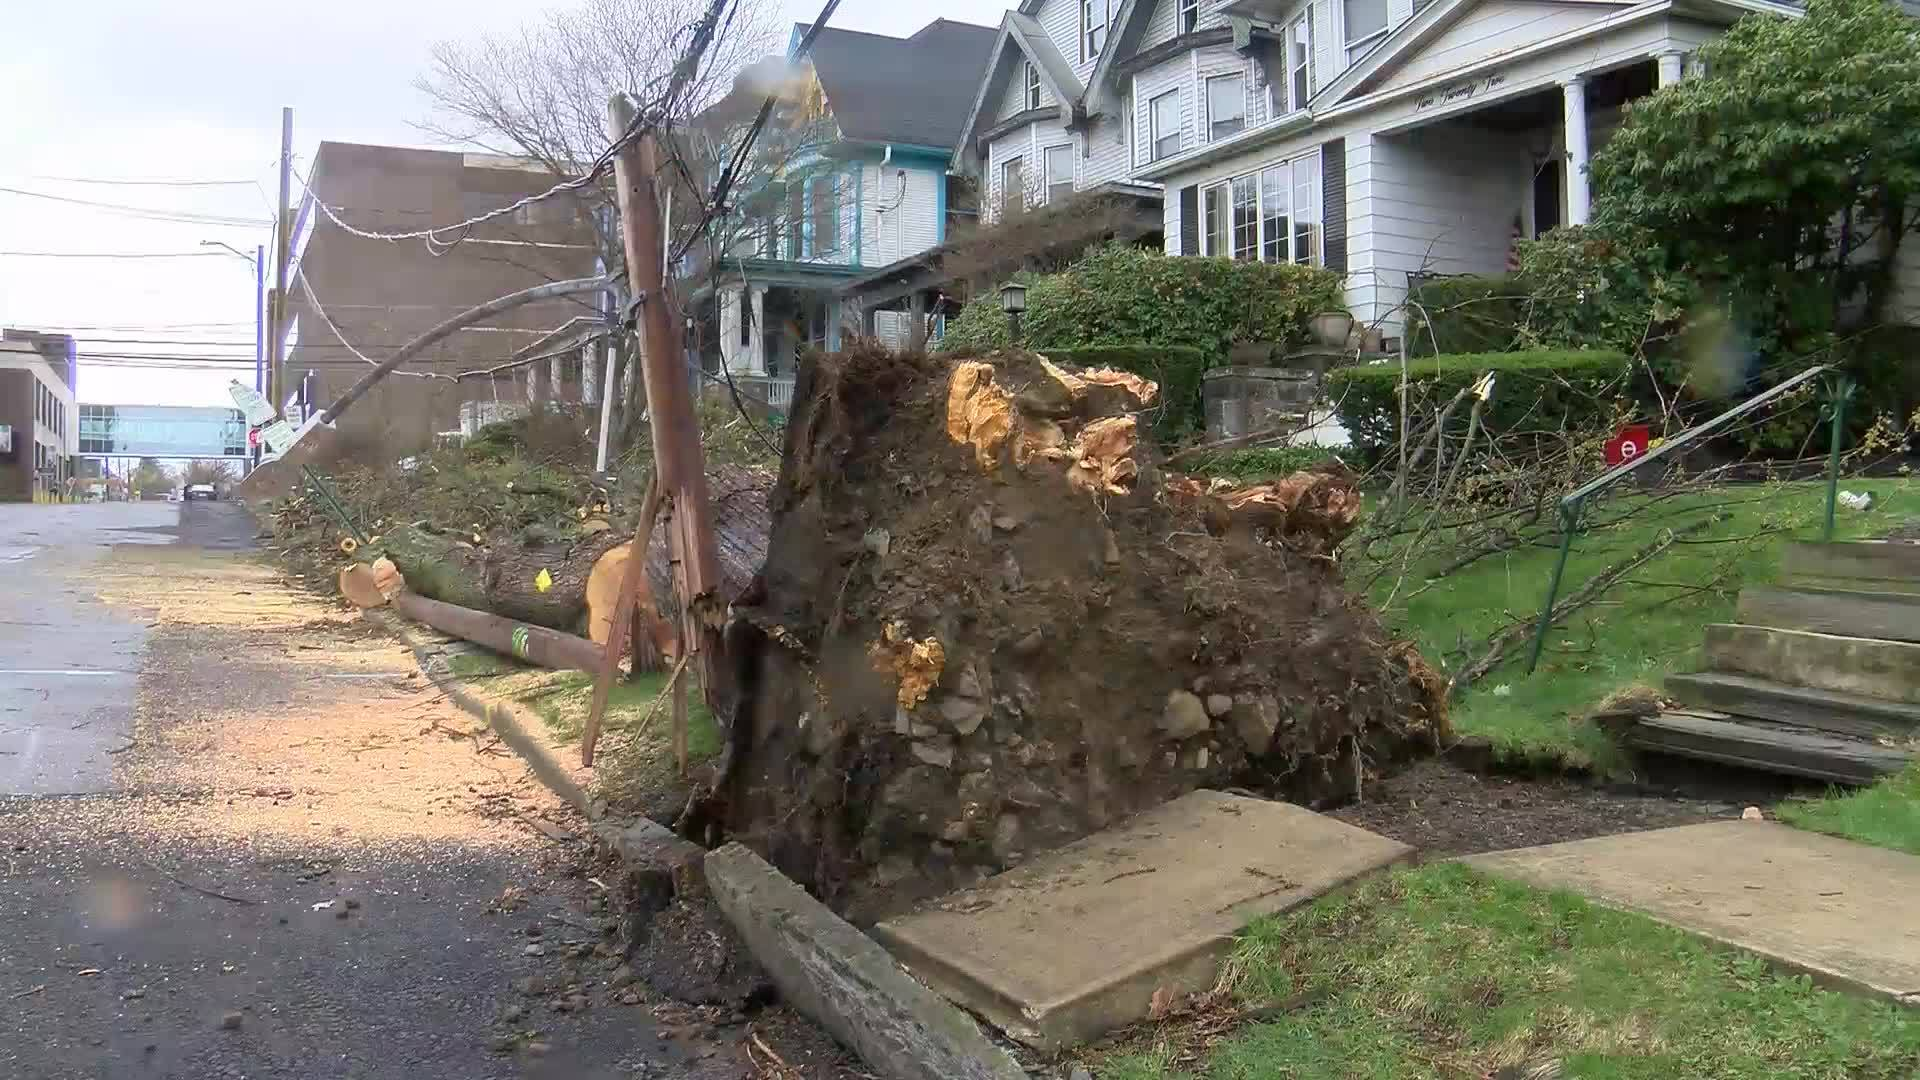 Scranton_Storm_Damage_5_20190415223523